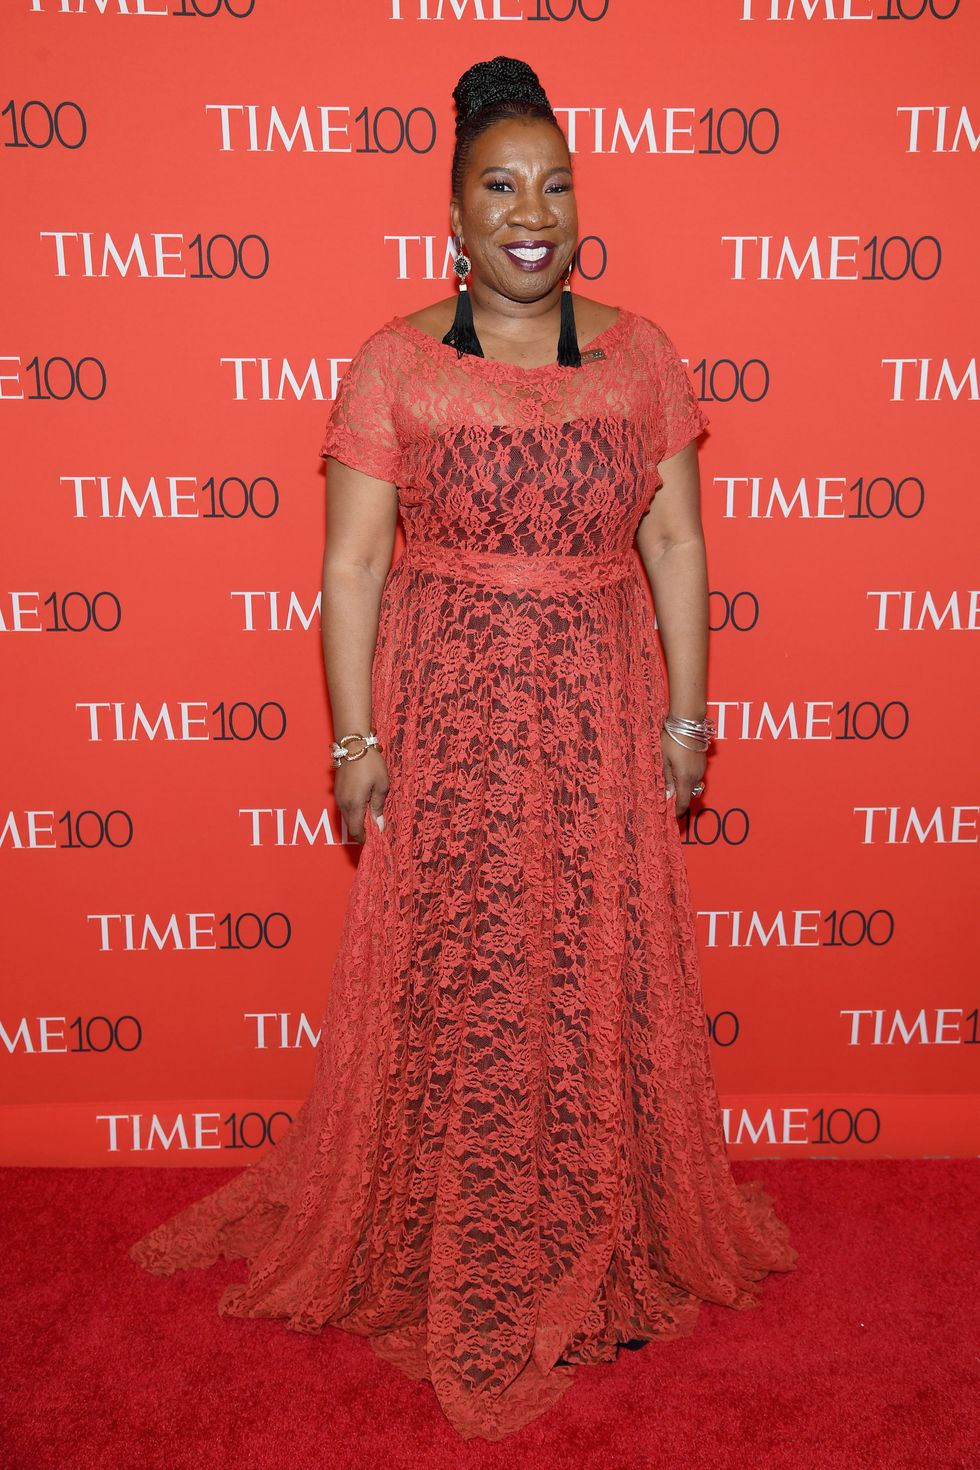 TIME 100 GALA 2018 RED CARPET TARANA BURKE.jpg